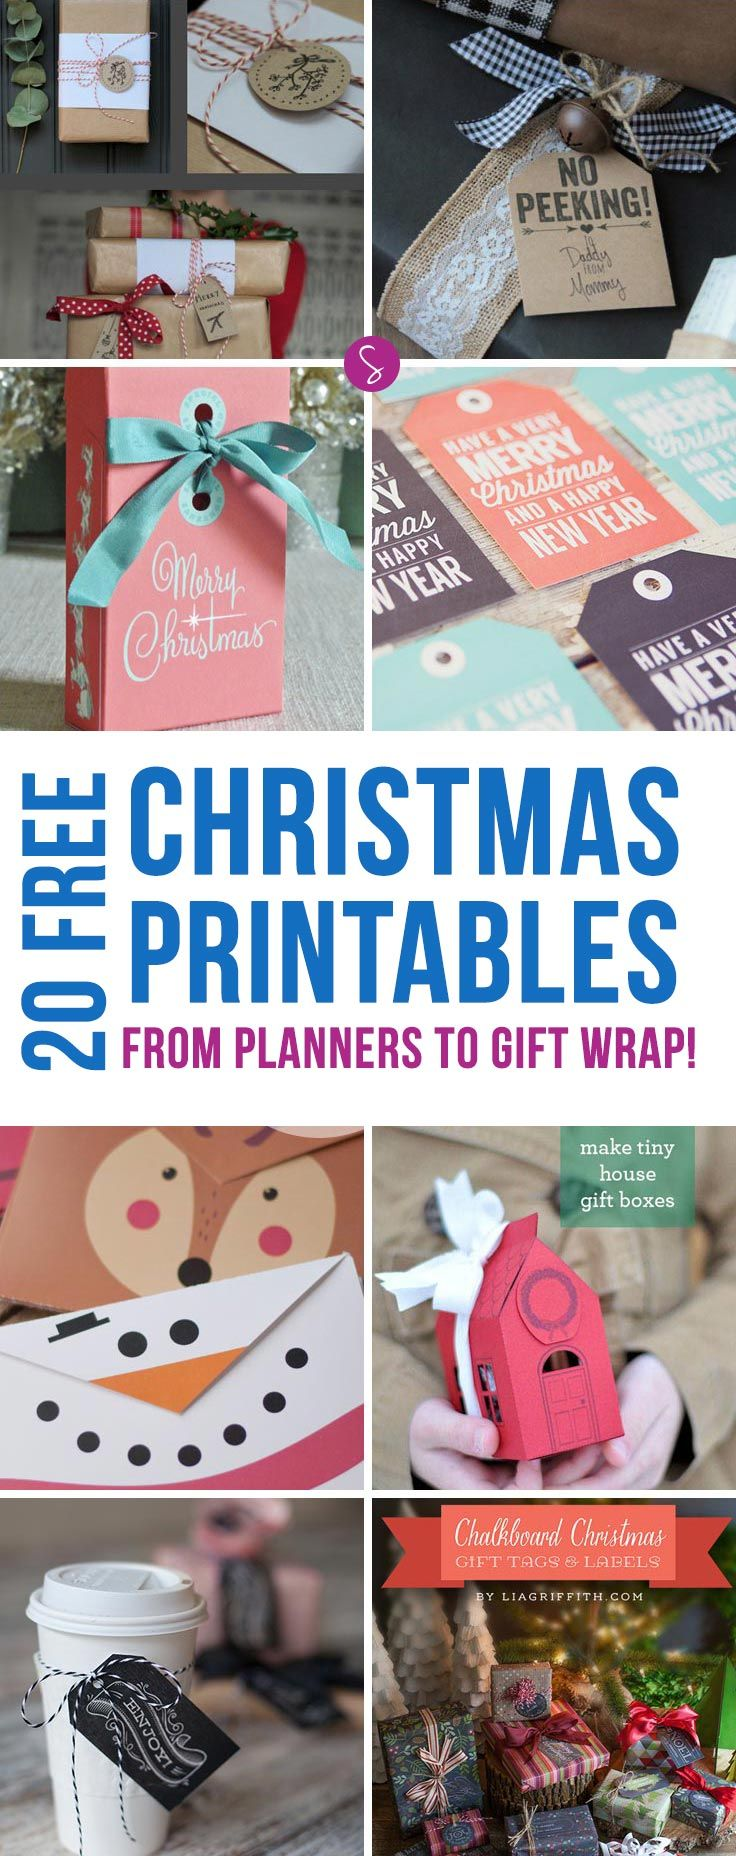 So many free Christmas printables here from planning to gift wrap!